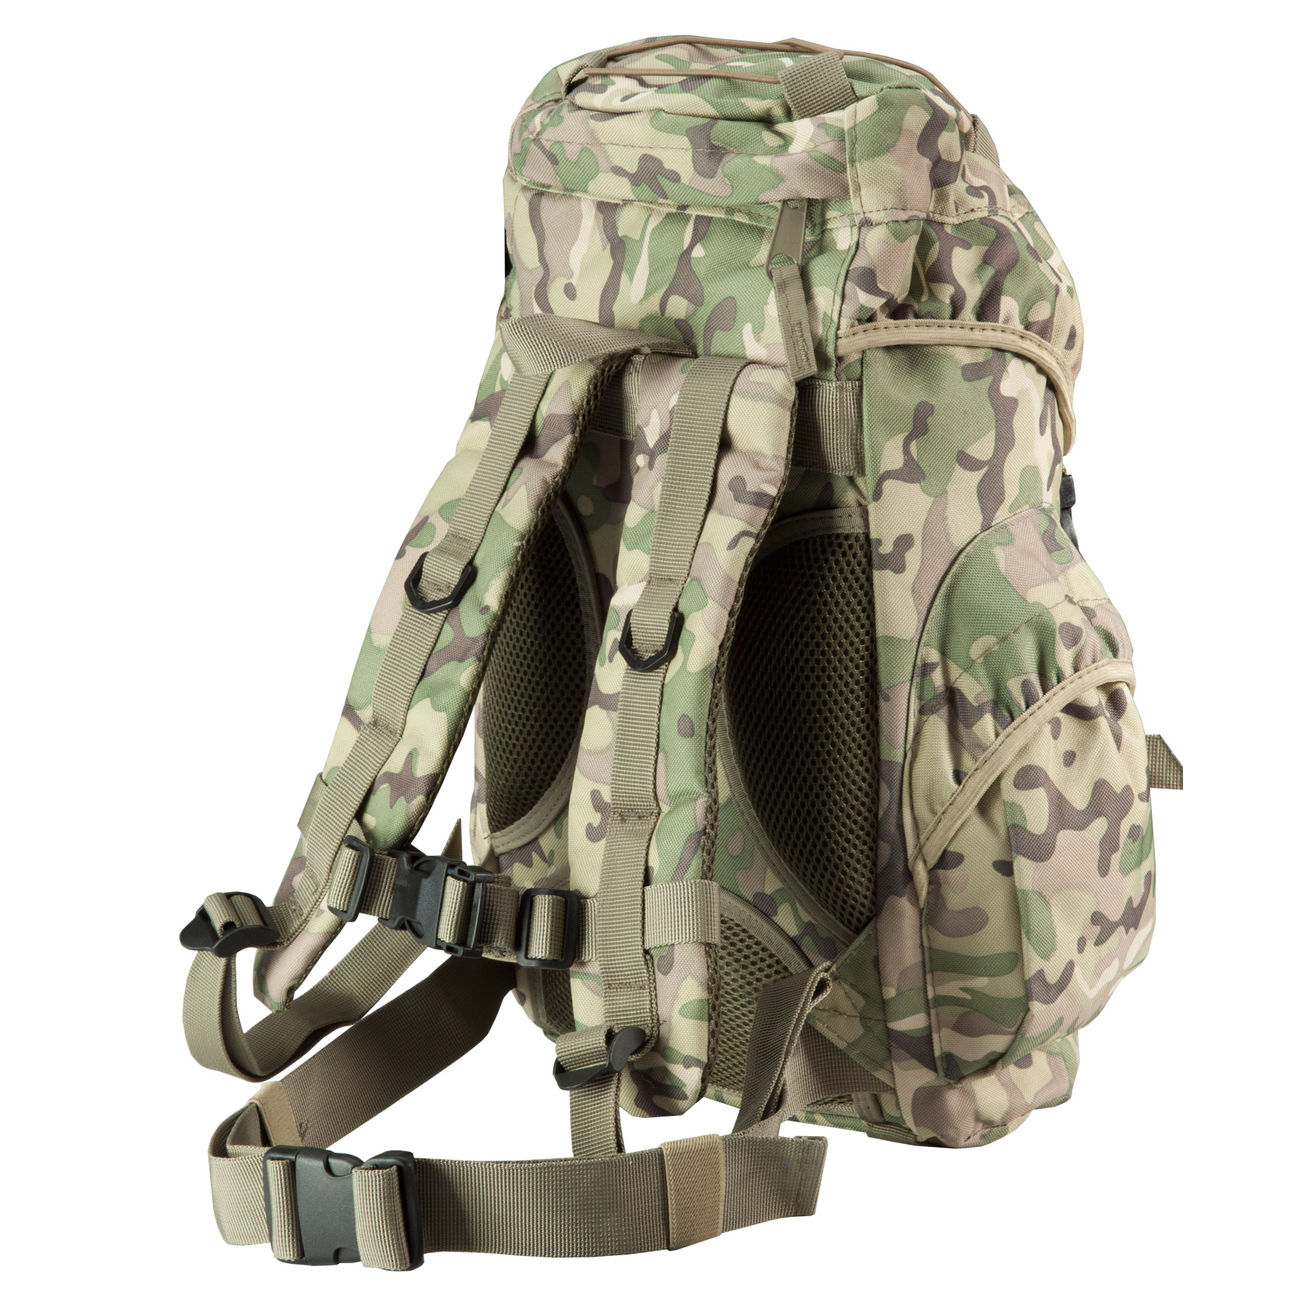 MFH Rucksack Recon I operation camo 2